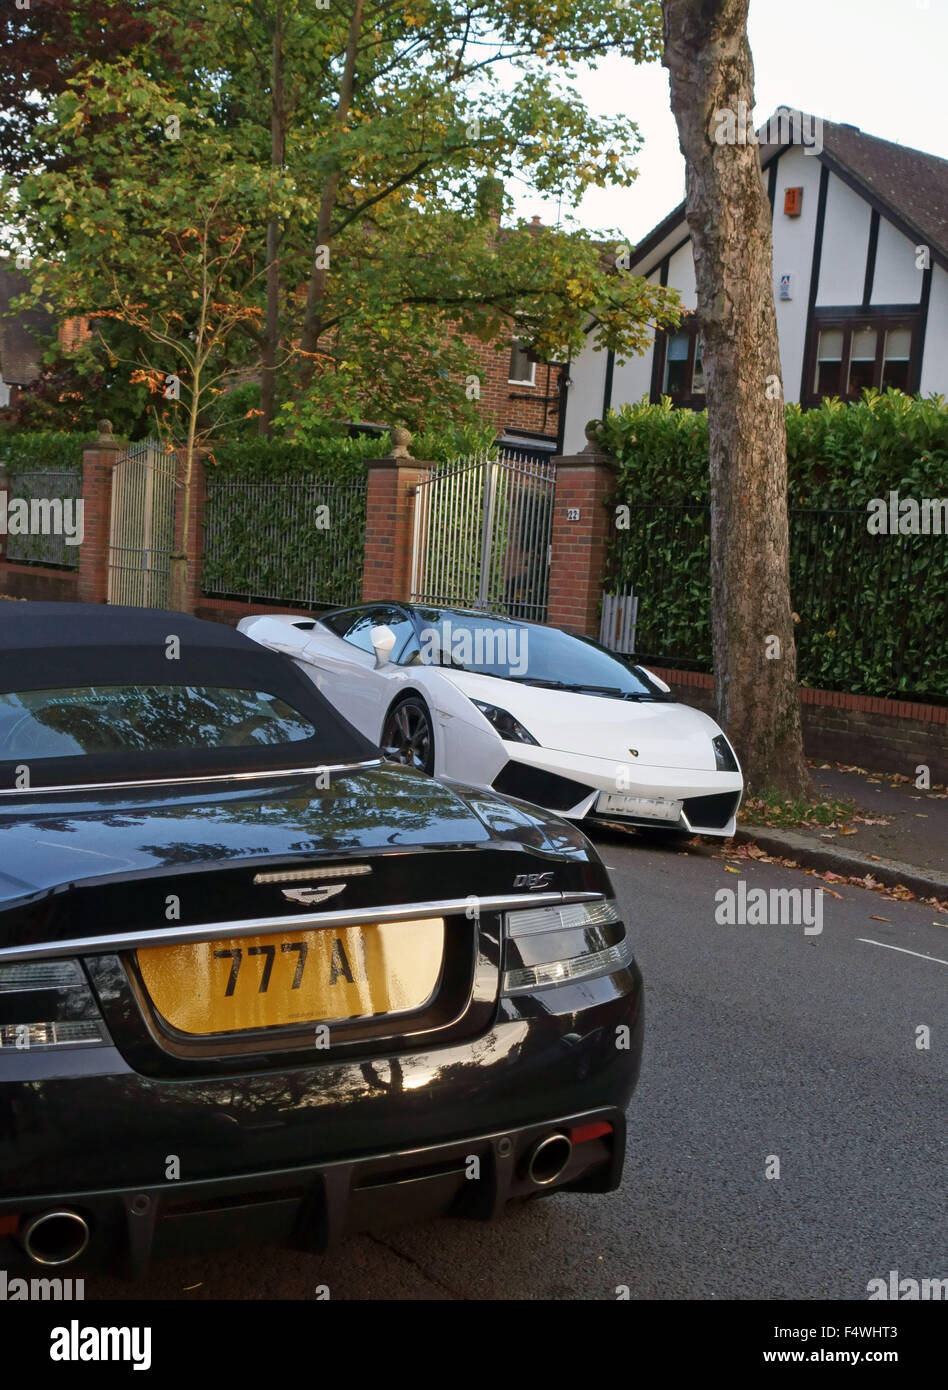 Luxury Cars Parked In Street In Wealthy North London Neighbourhood